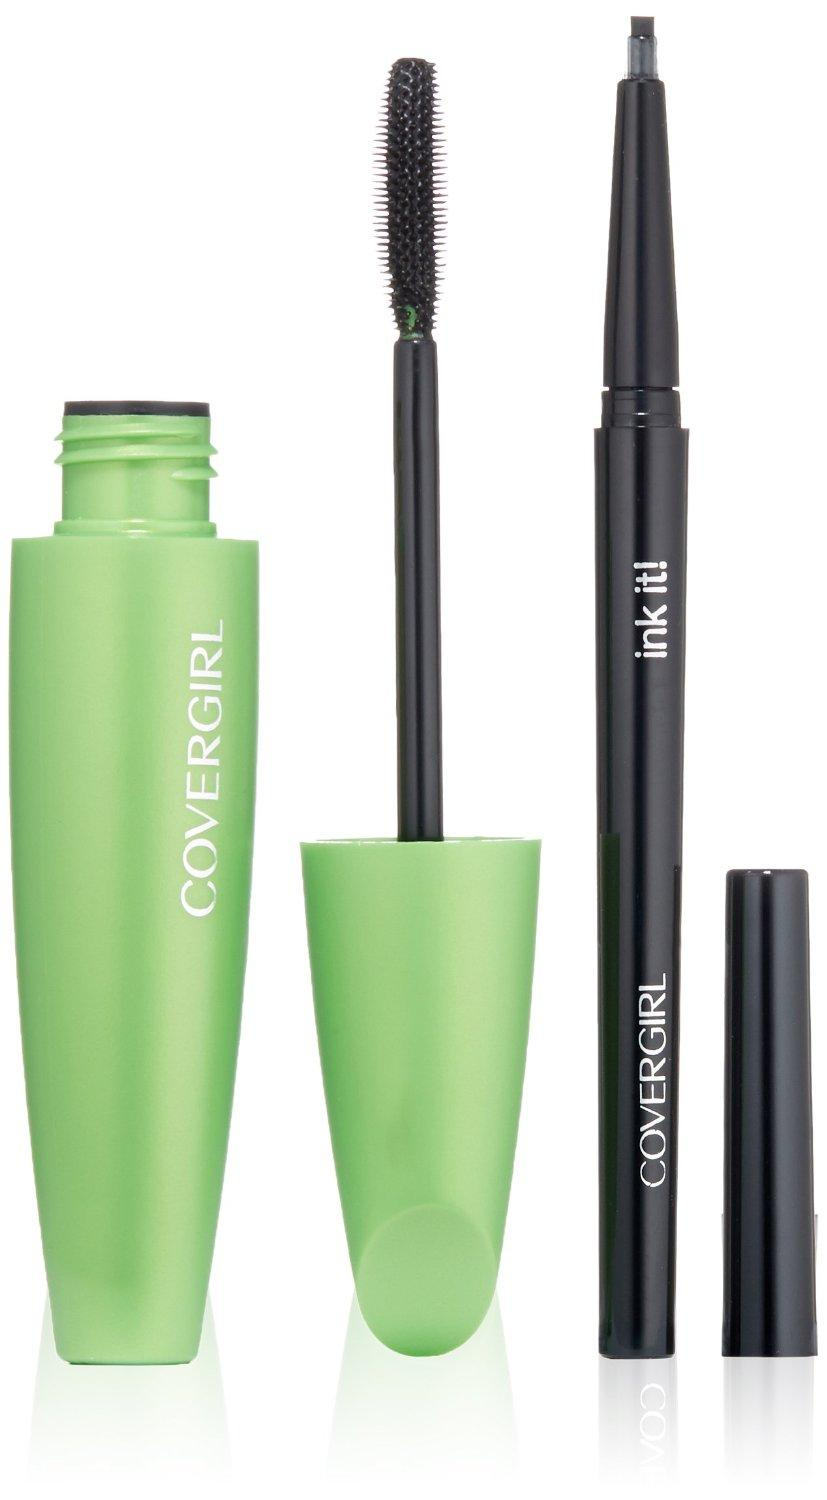 Covergirl Clump Crusher Water Resistant Mascara By Lashblast, Black Brown 835